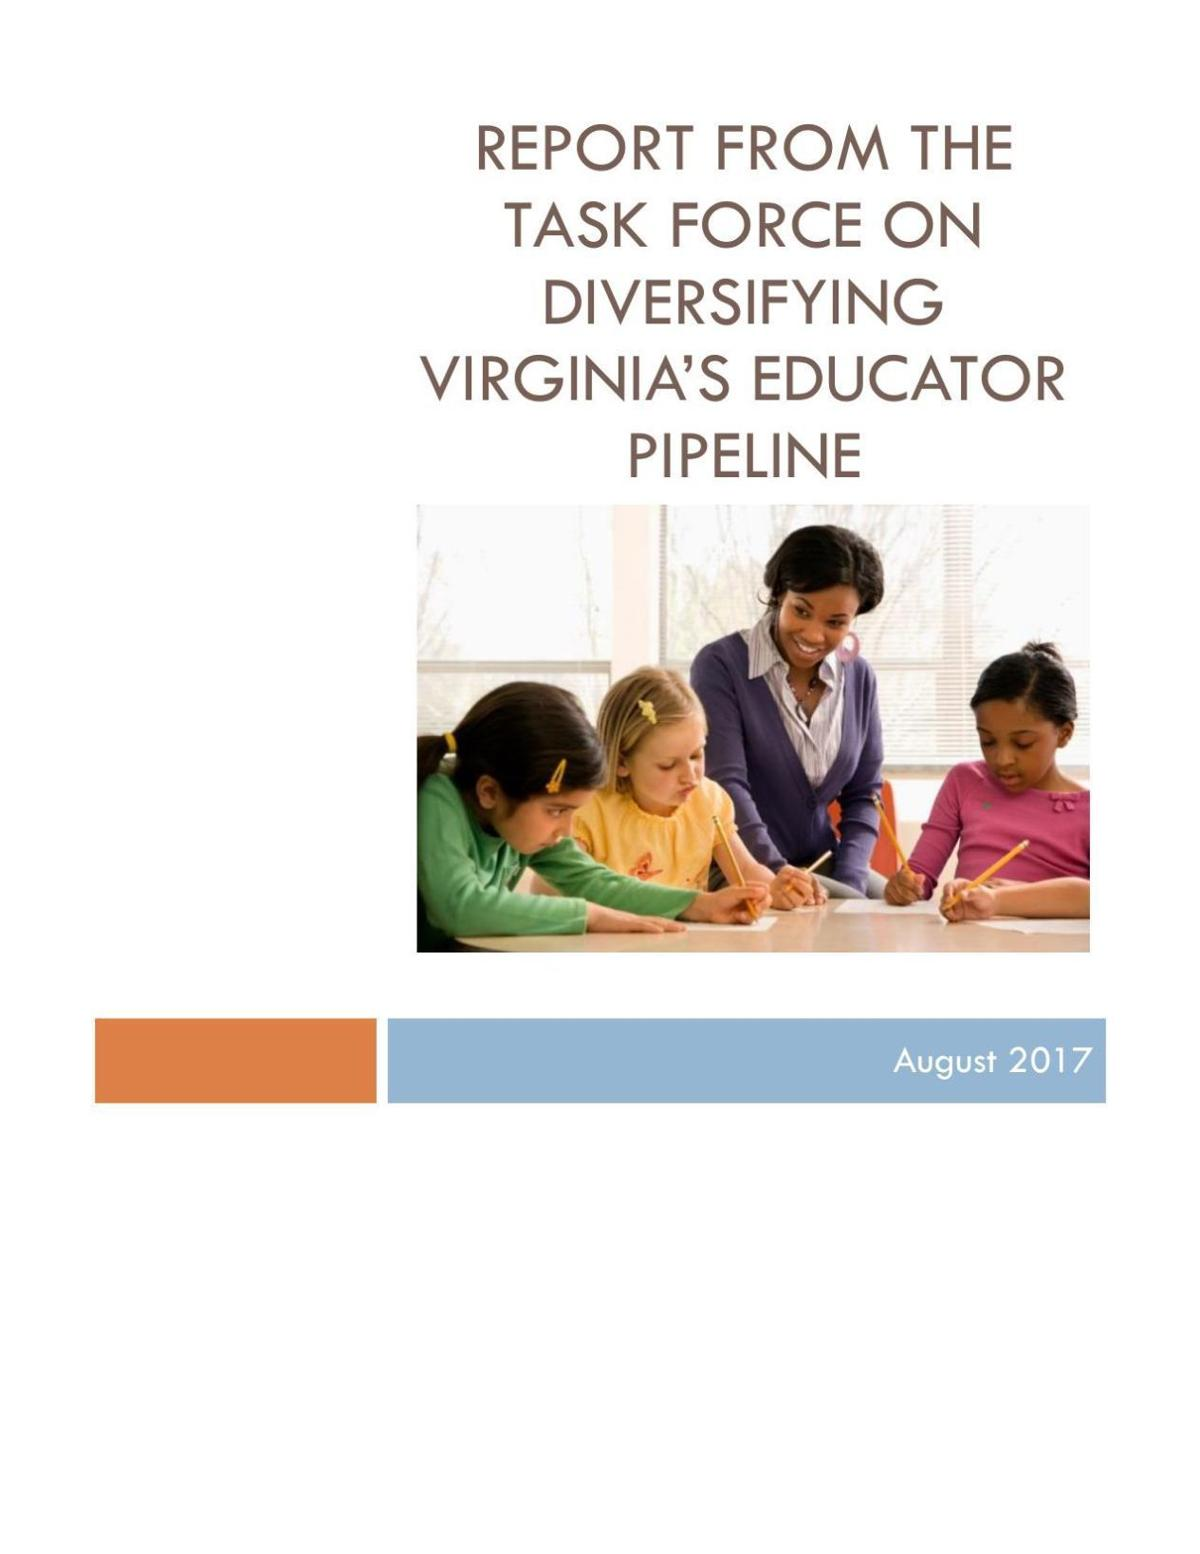 Report from the Task Force on Diversifying Virginia's Educator Pipeline